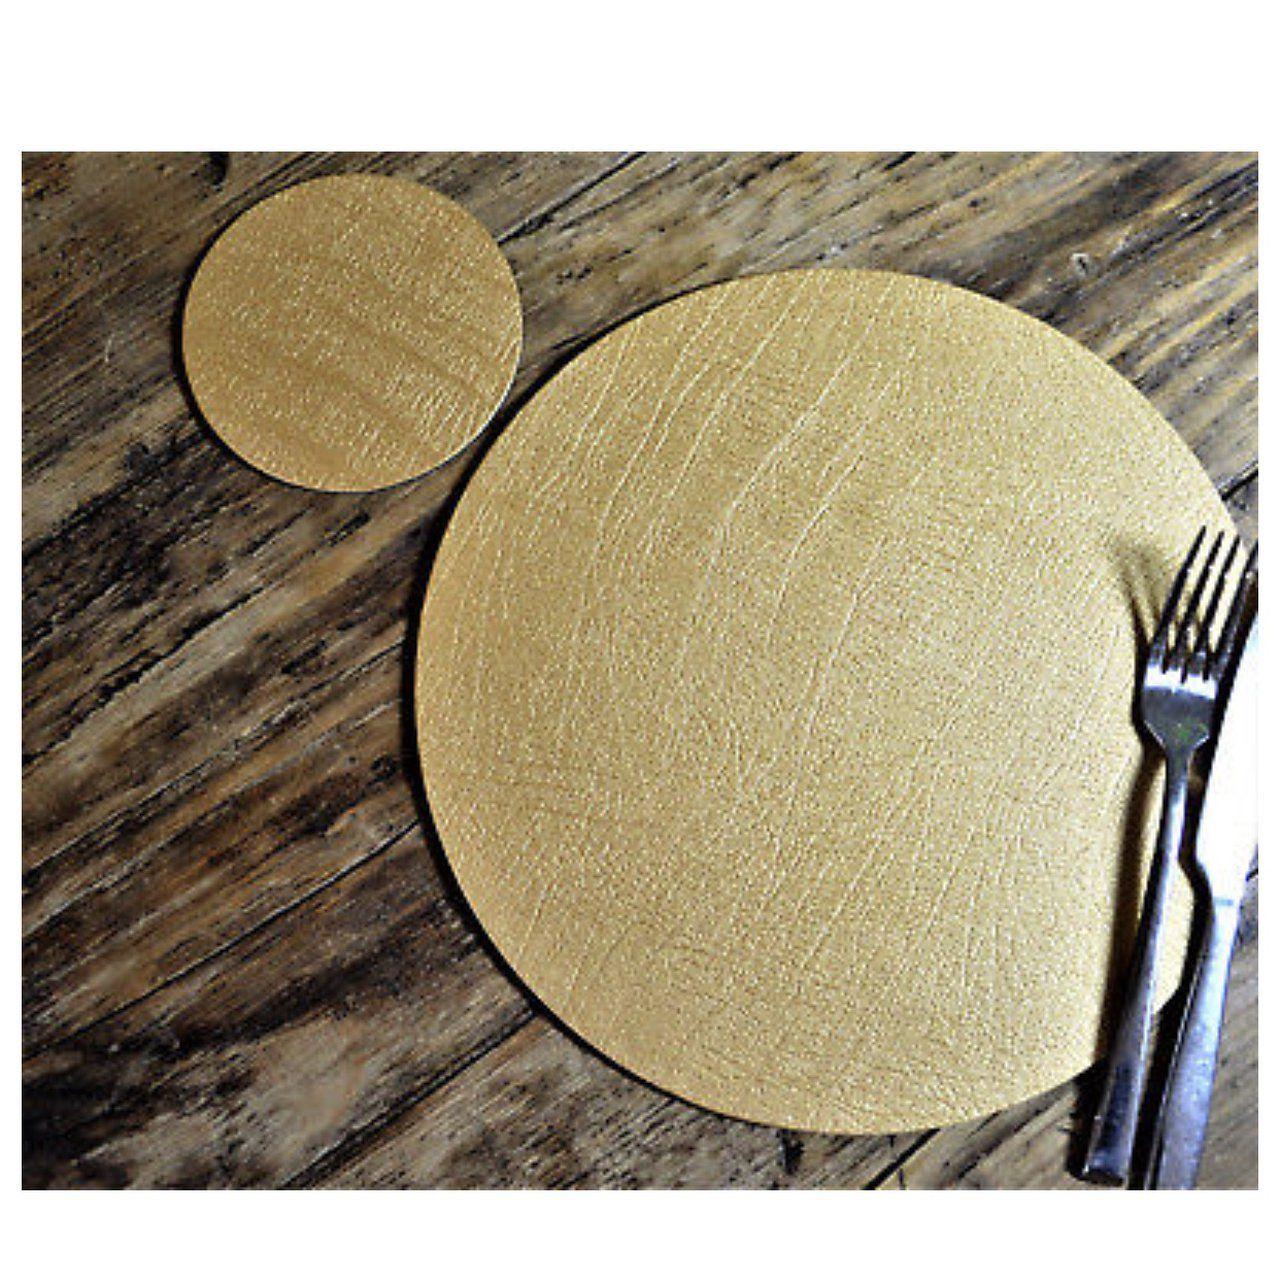 Set 4 Classic Gold Round Leatherboard Placemats 4 Coasters Uk Made Table Mats P P Included In Price First Class Recorde Bonded Leather Classic Gold Gold Bond